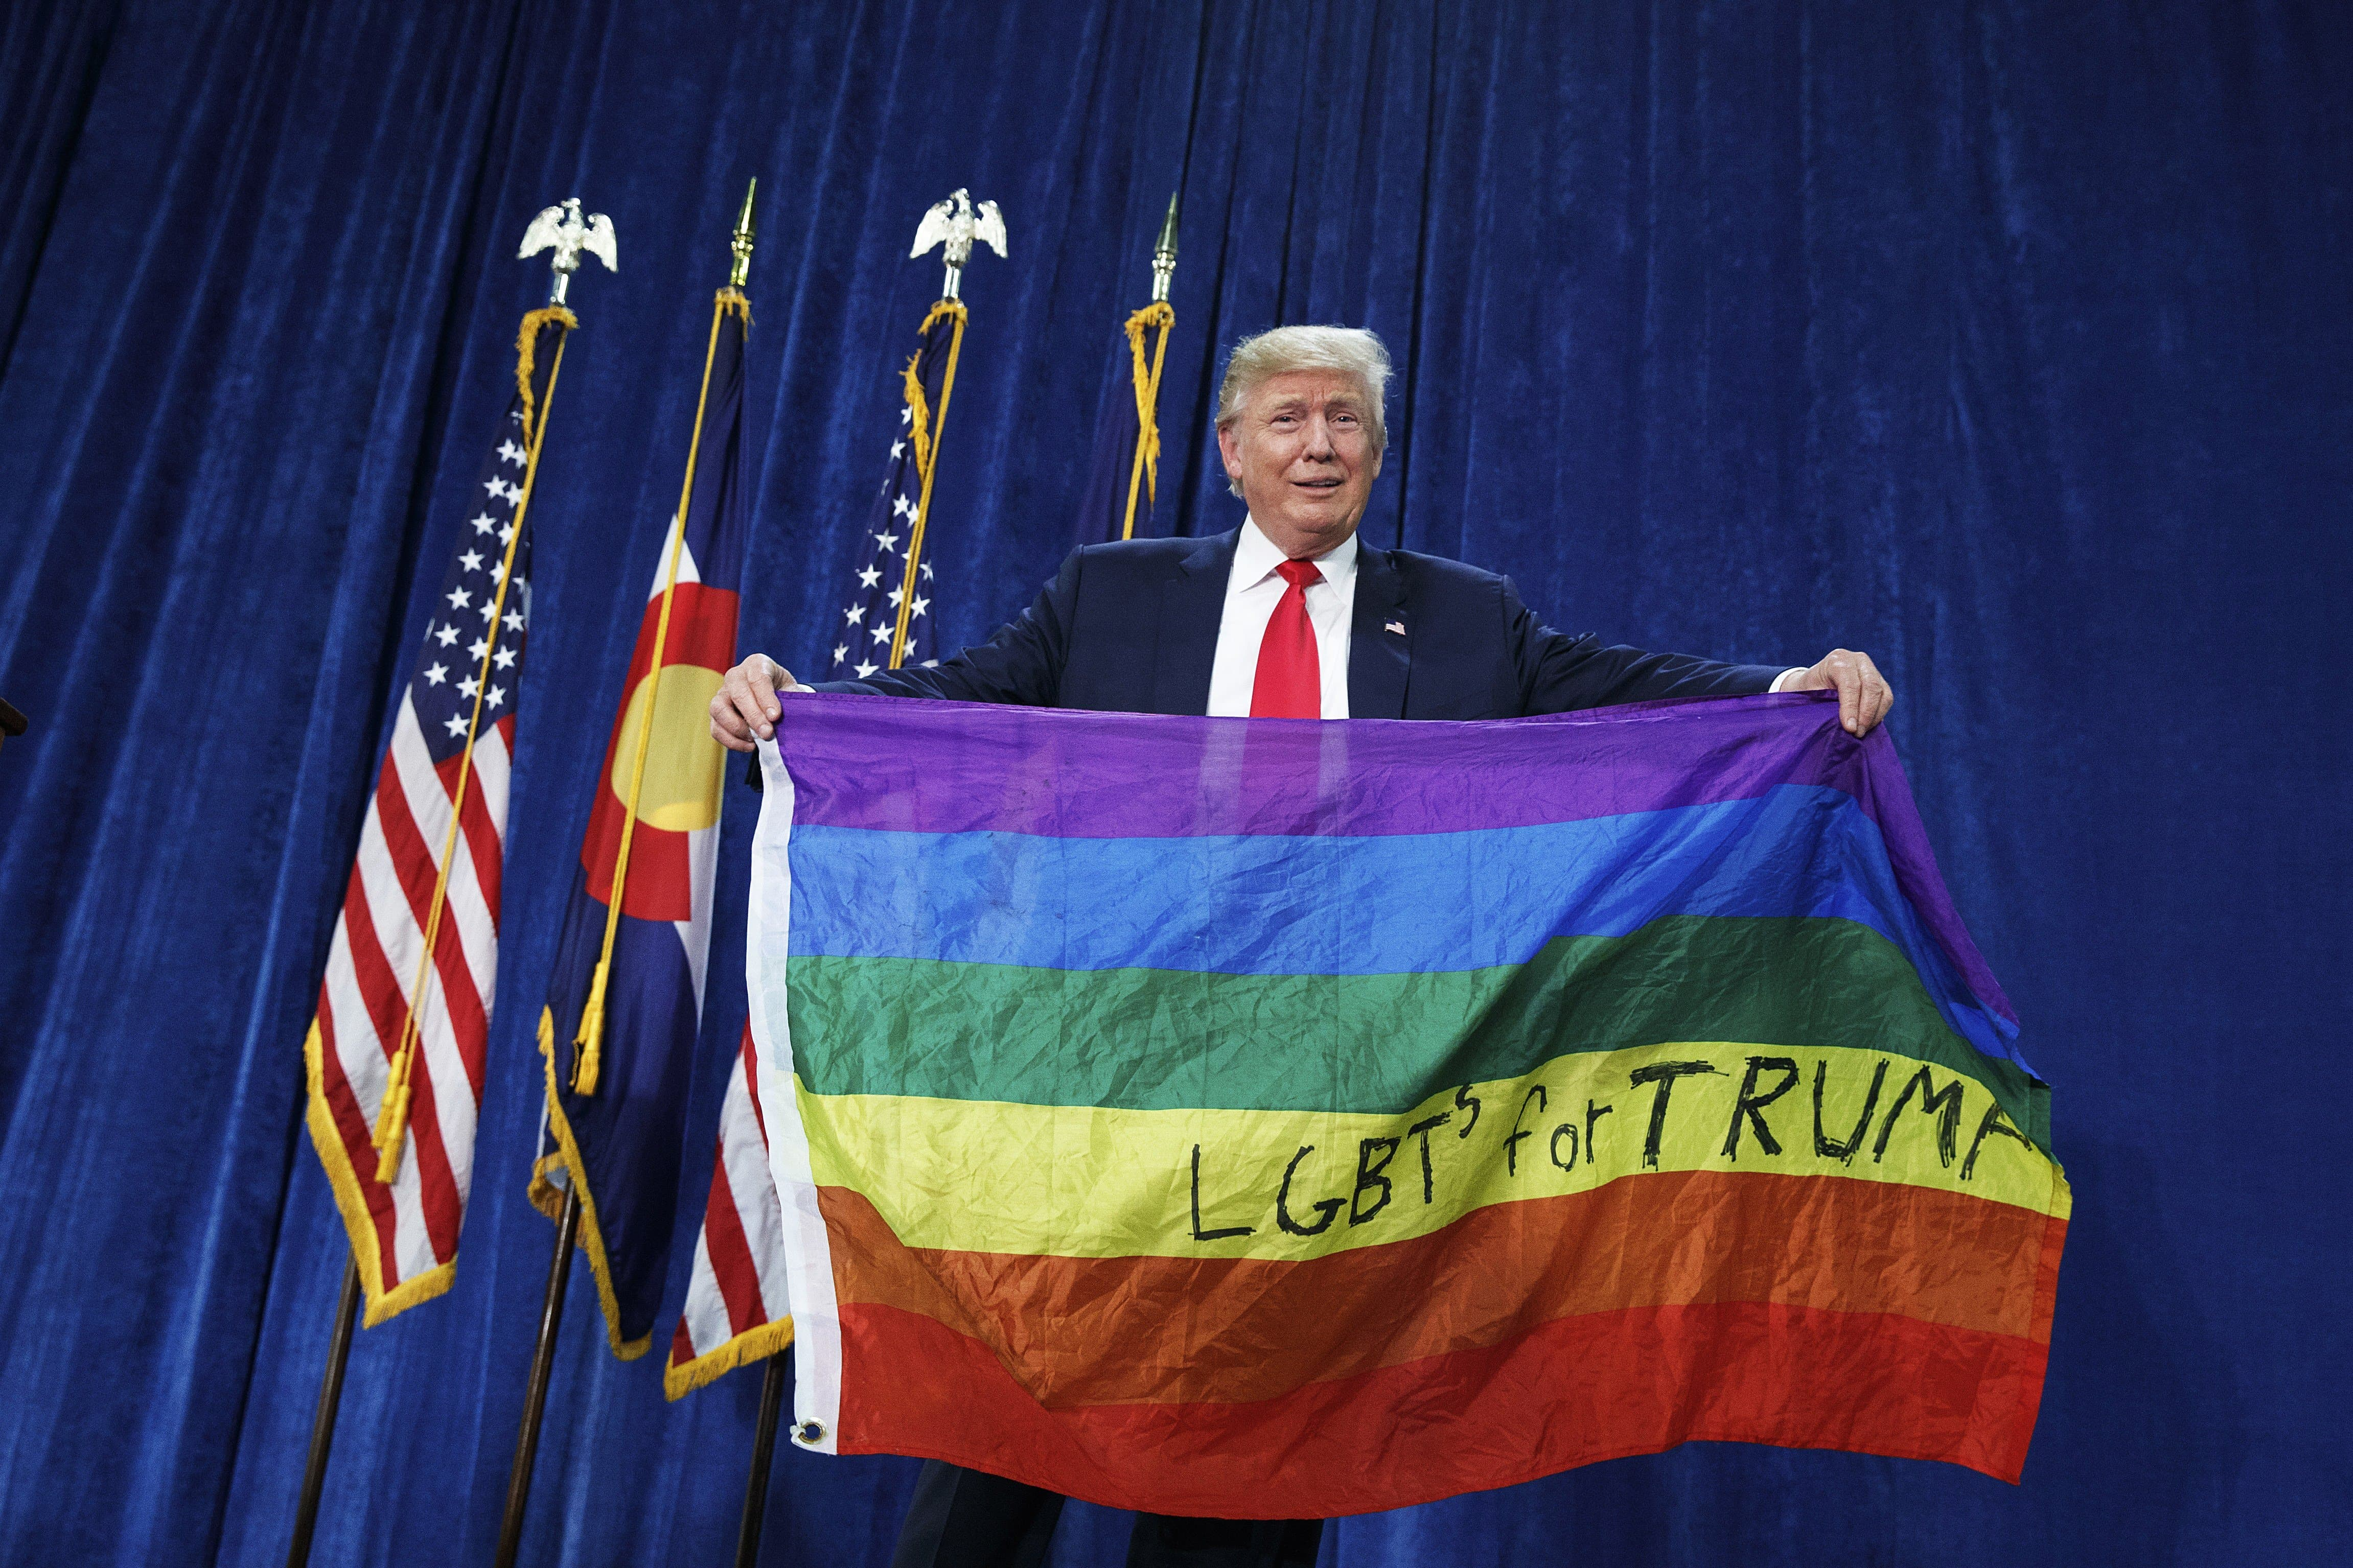 Trump is objectively the most pro-gay president in history